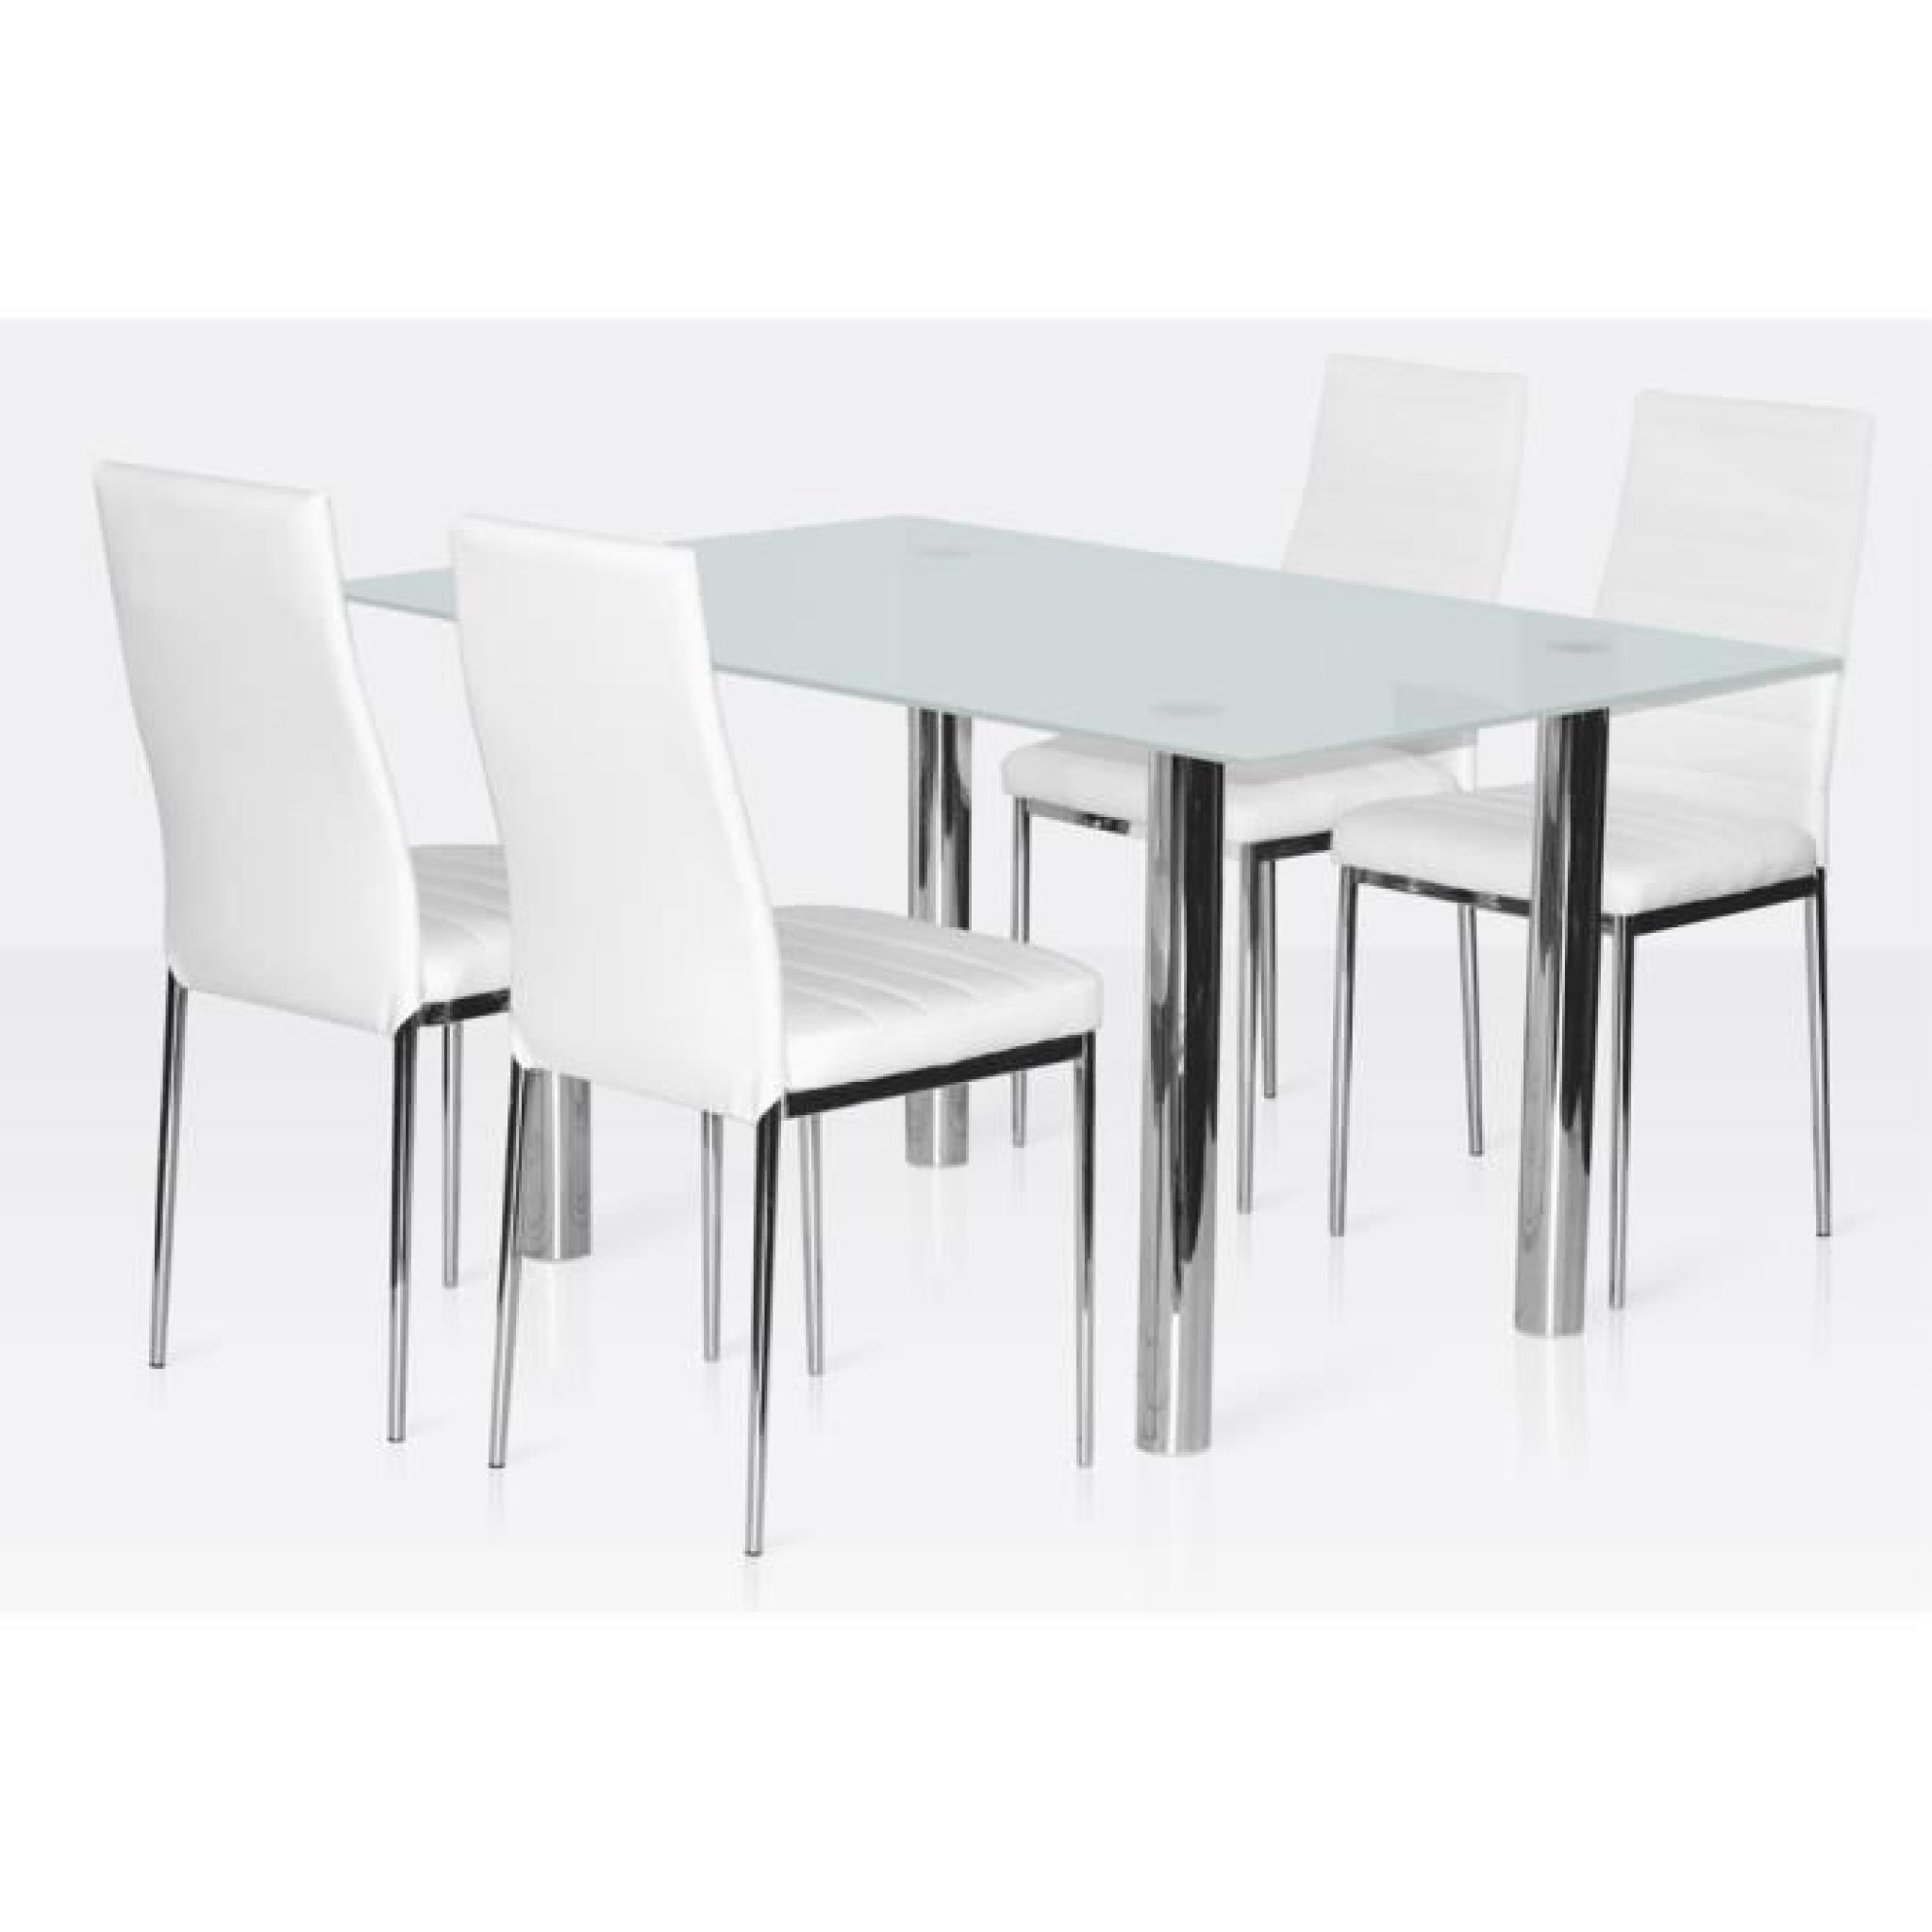 Ensemble salle manger 4 chaises table en verre blanc - Ensemble table a manger ...